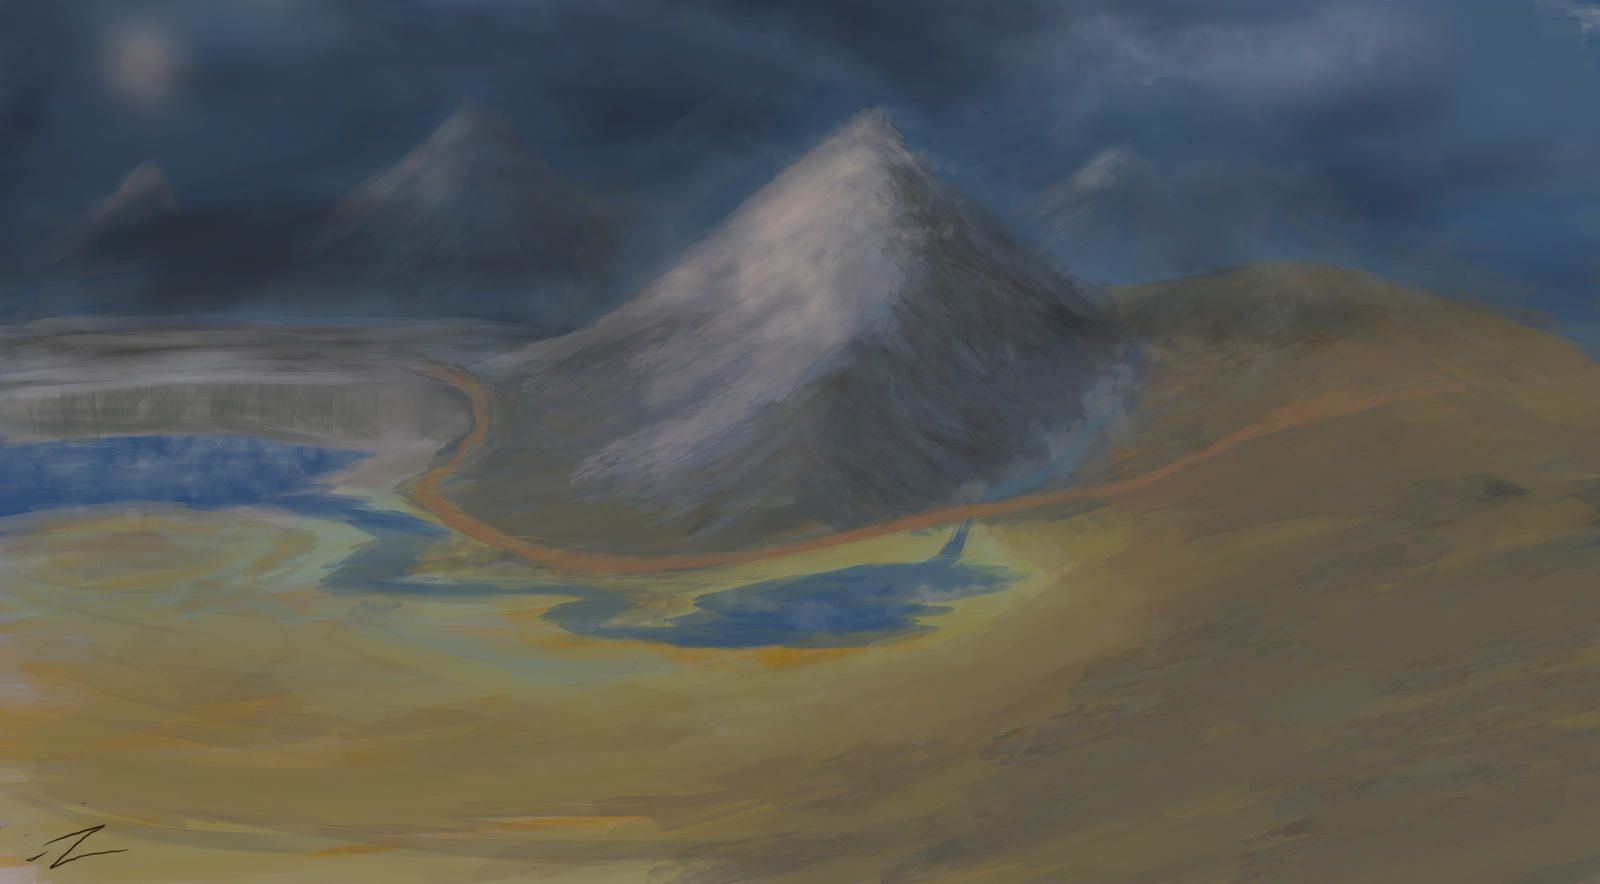 mountain_highlands_by_thesimplezeay-d9dl